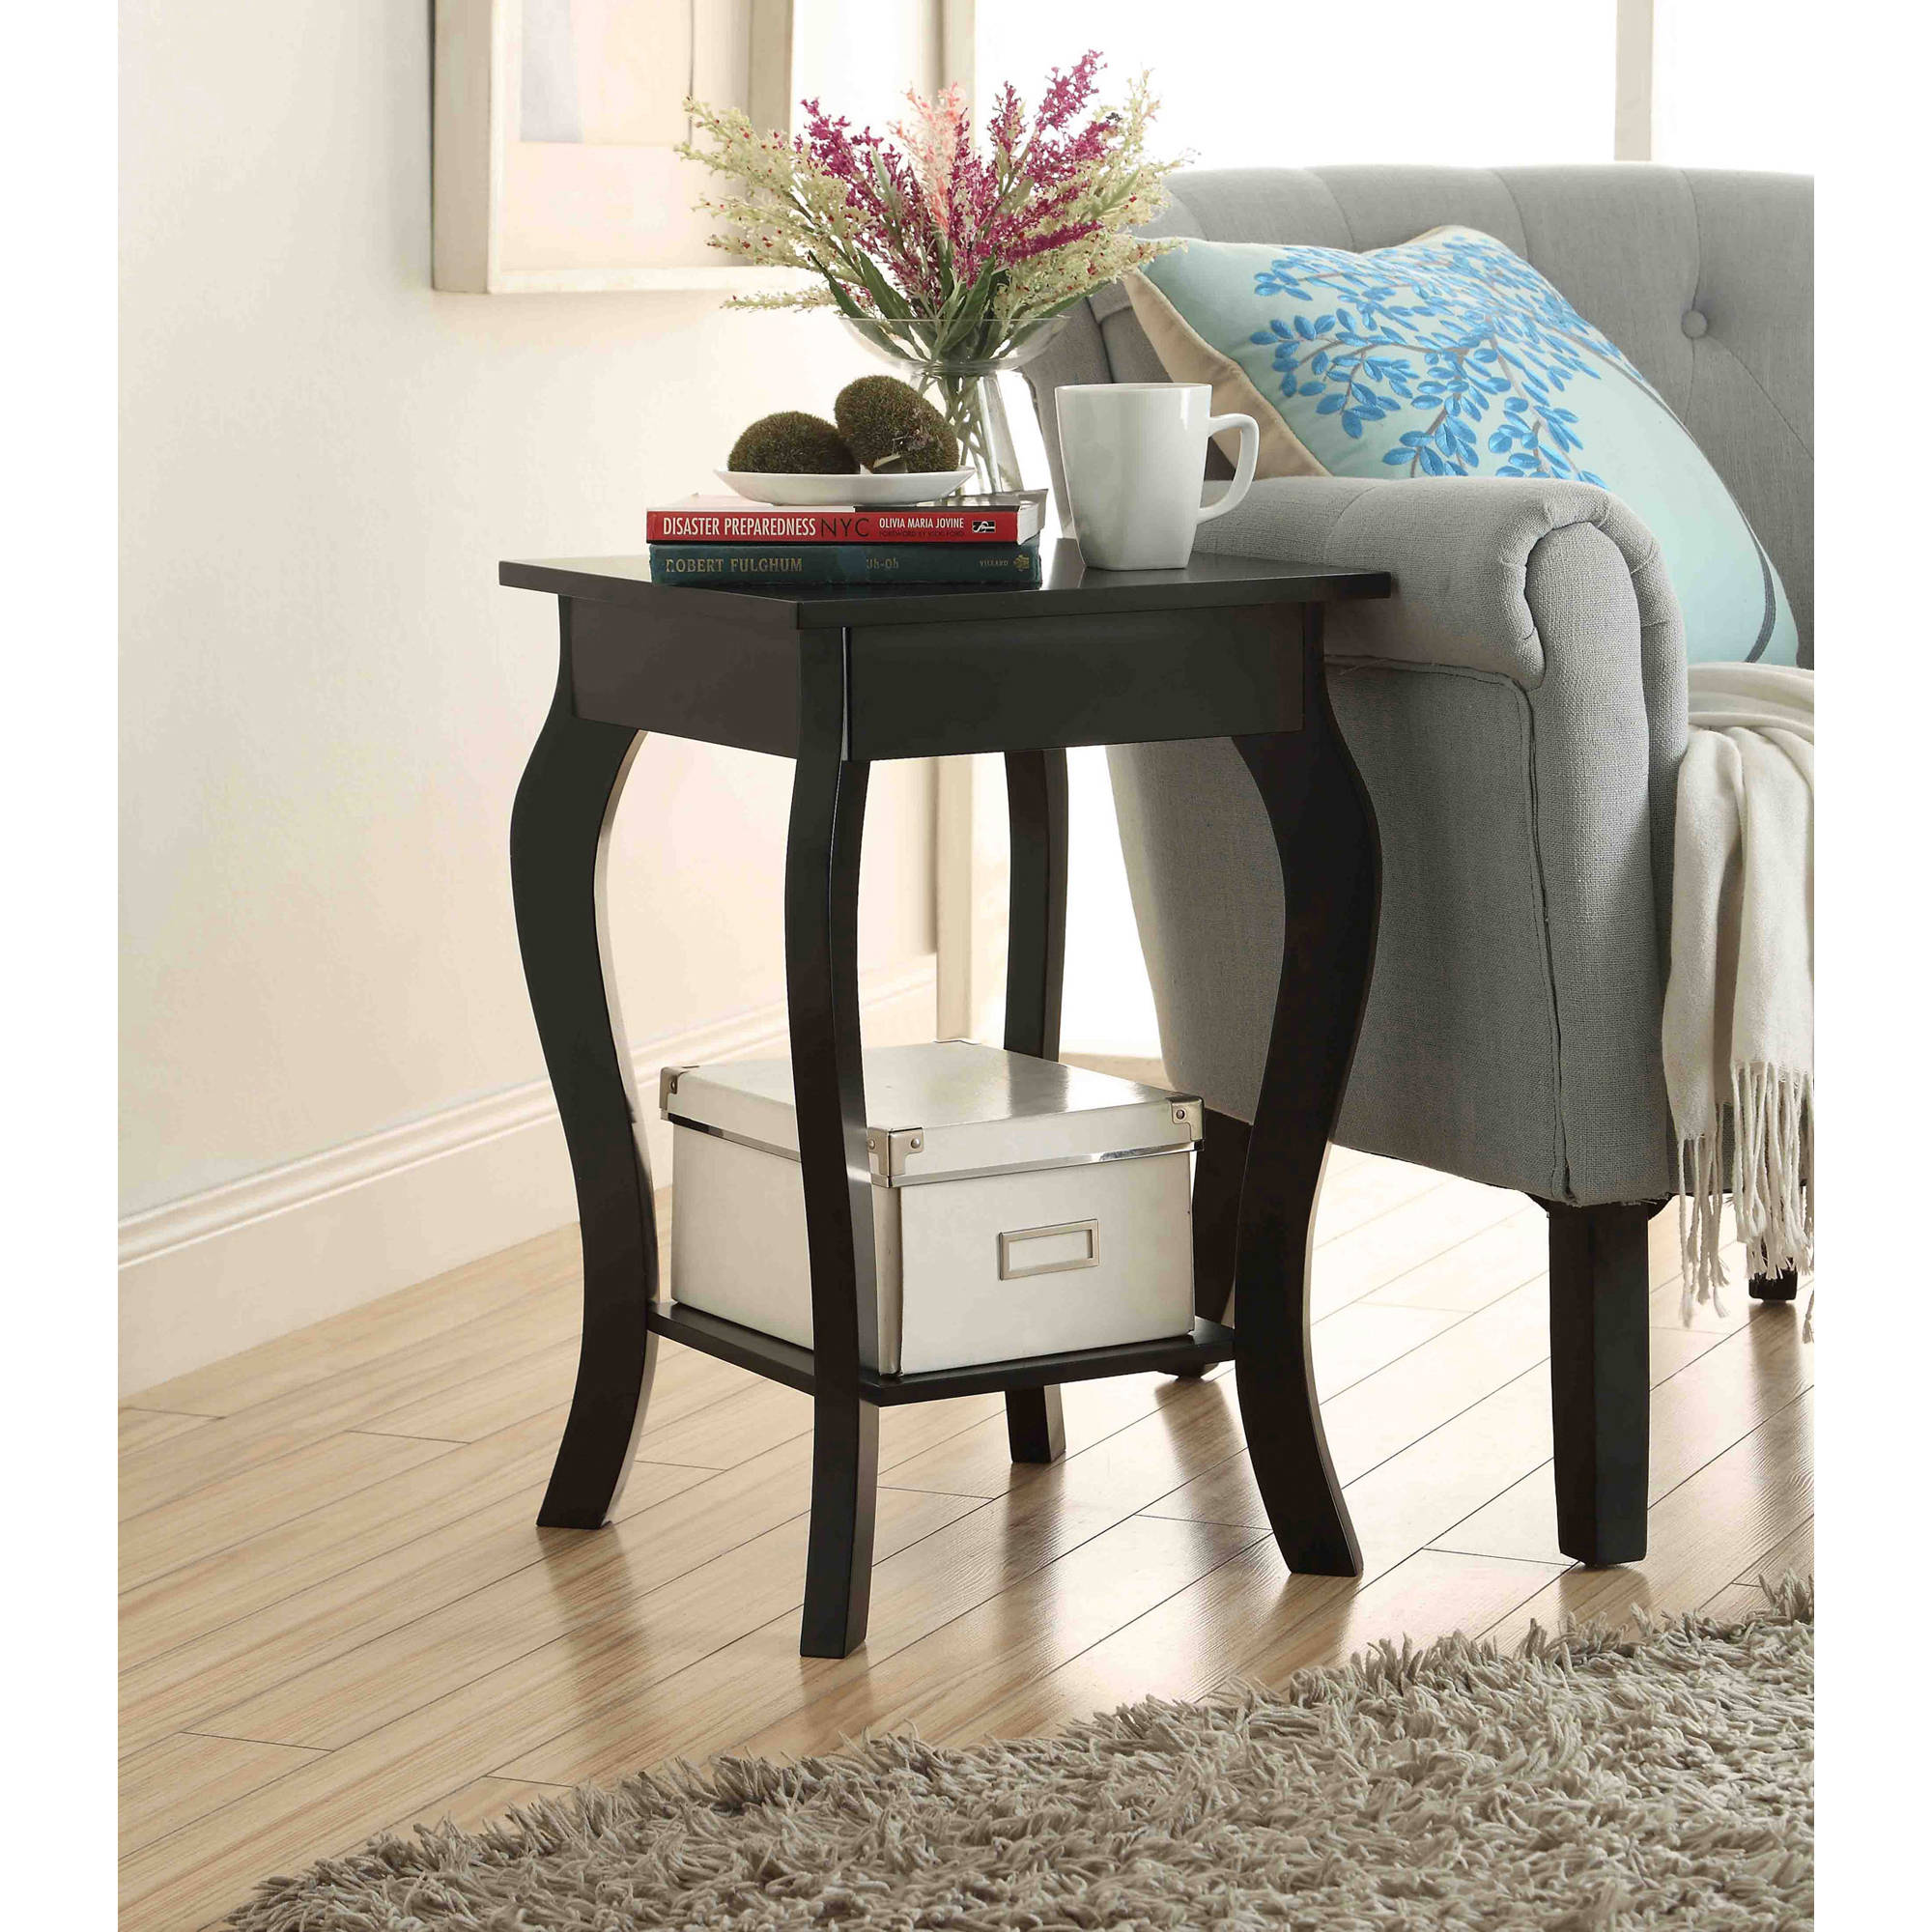 rustic table and chairs the super free black side set pretty glass end tables coffee clearance sets impressive family dollar amazing ideas with exquisite short espresso modern